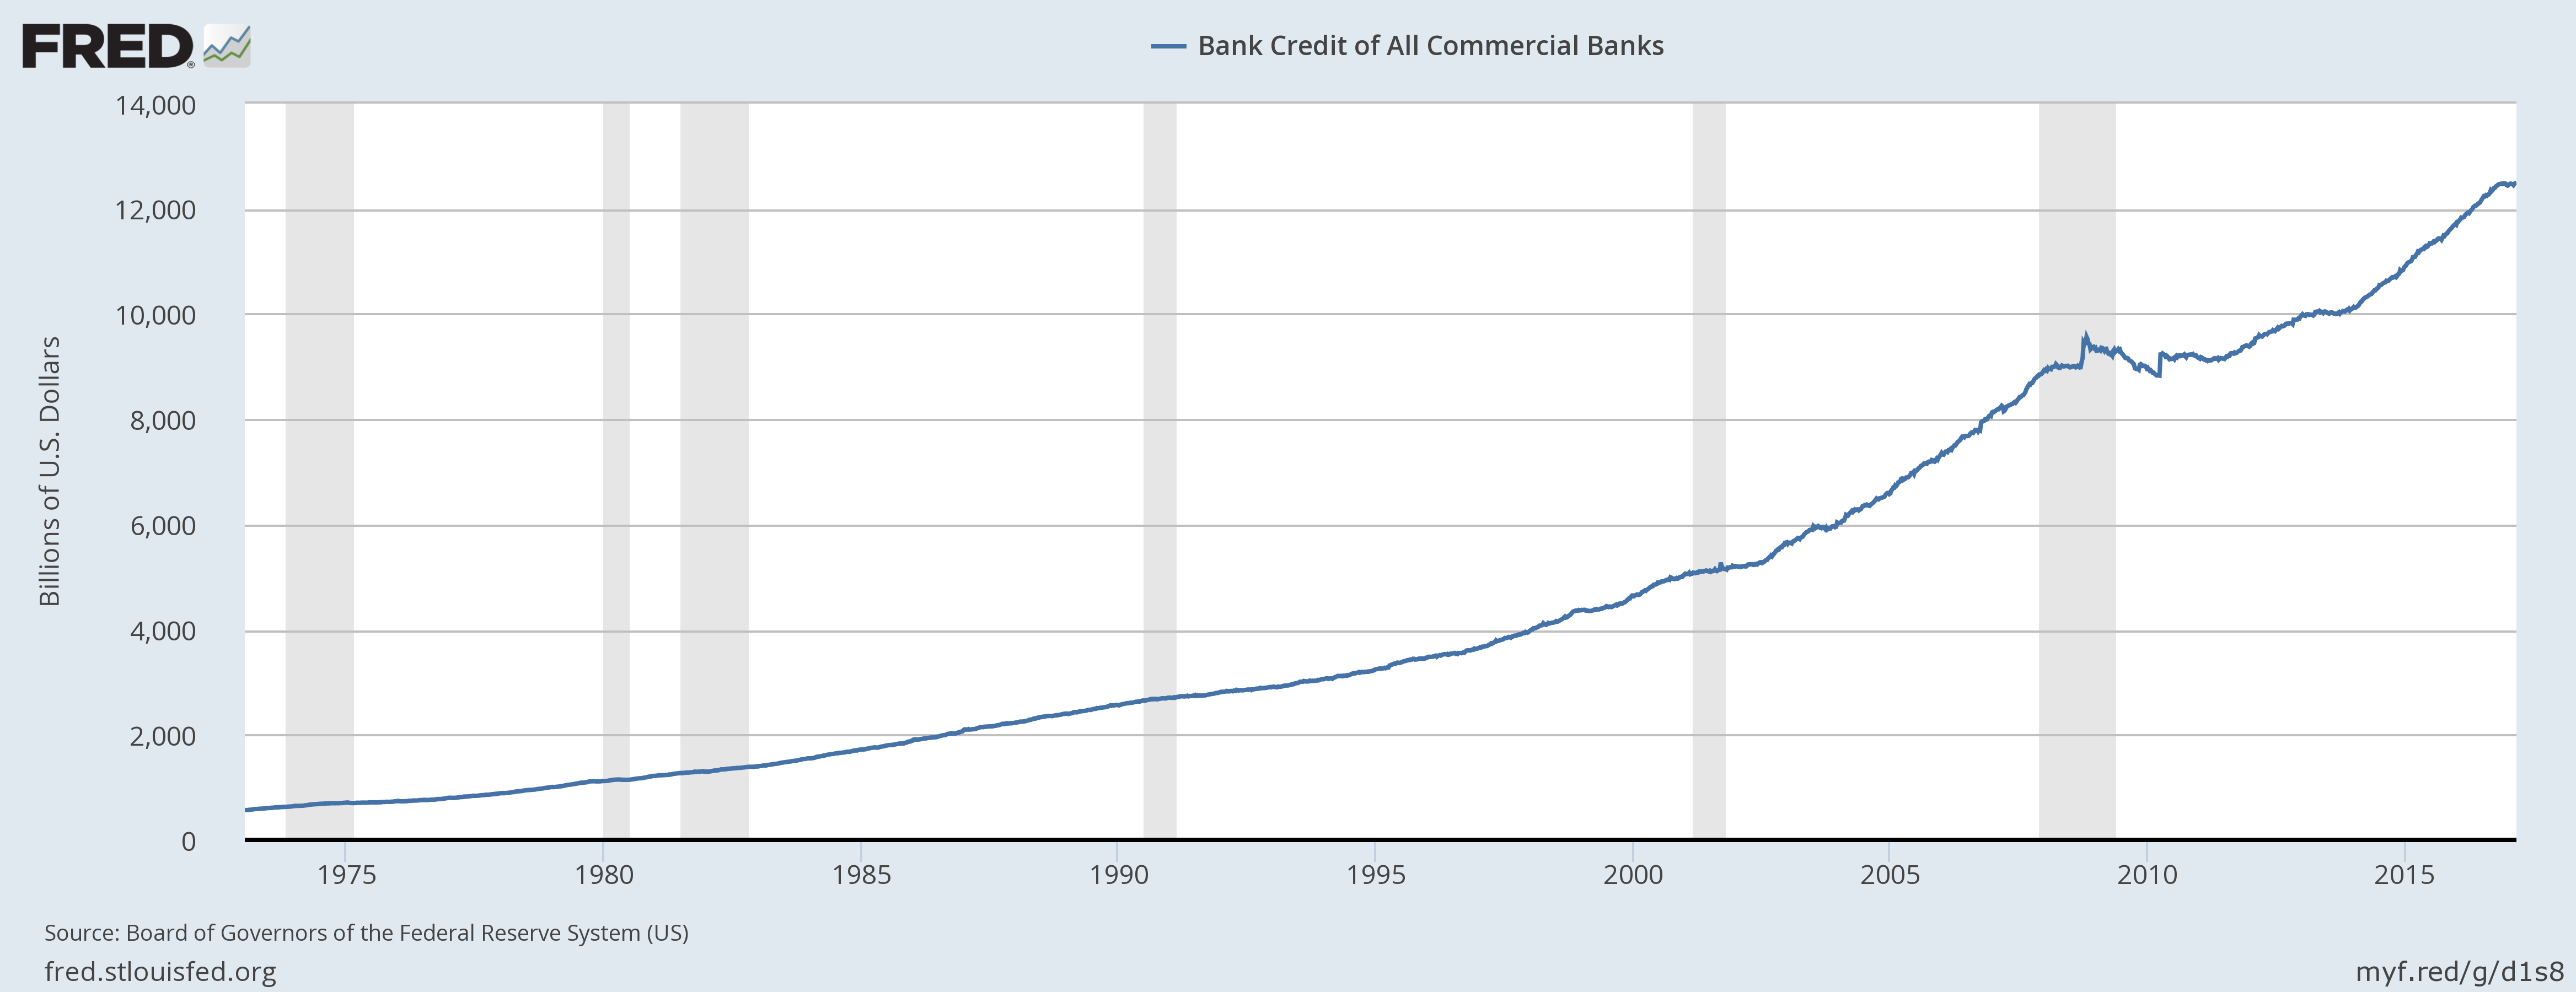 bank credit all commercial banks usa